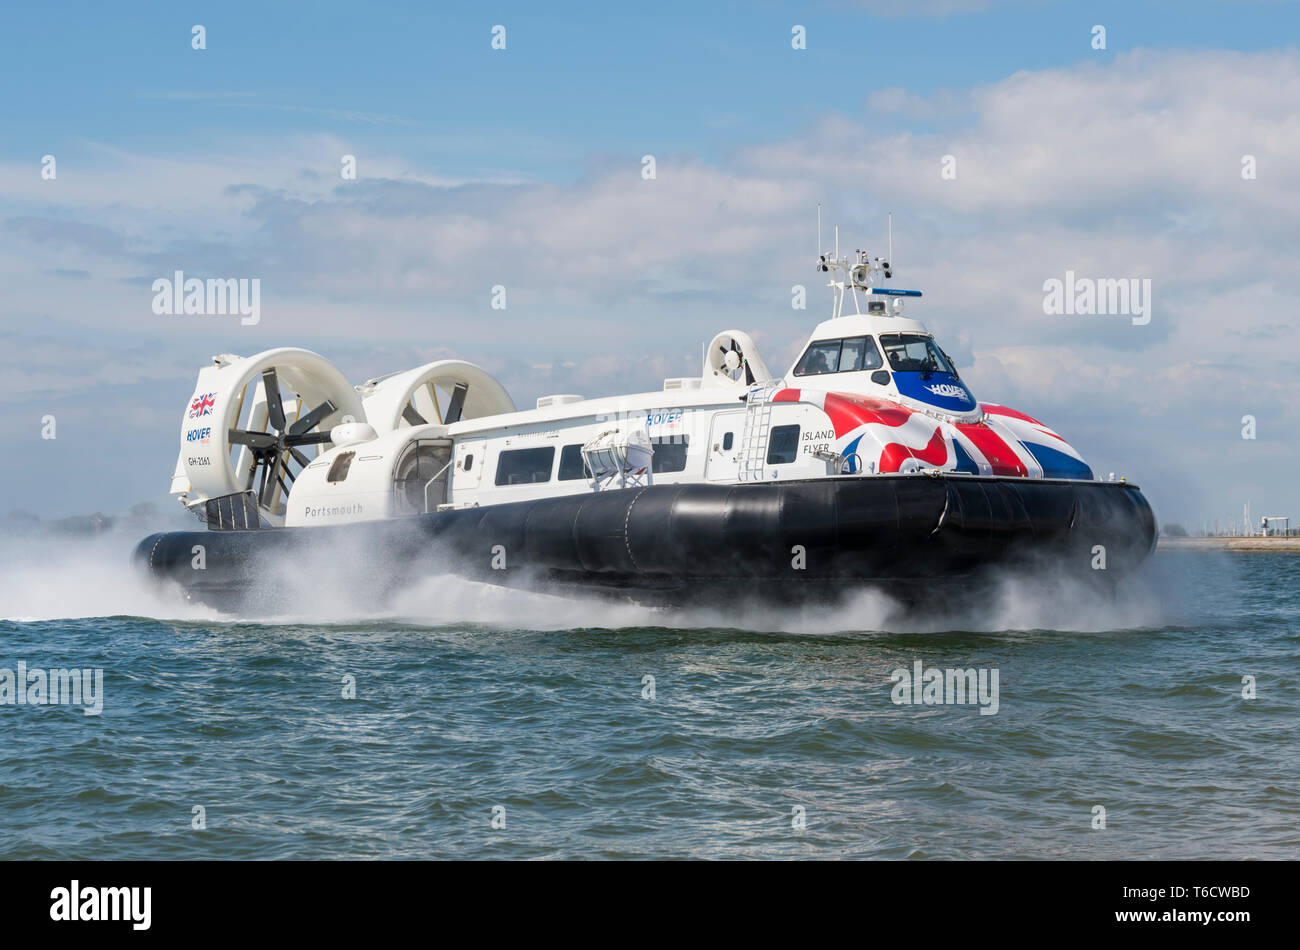 Island Flyer (GH-2161), a Griffon Hoverwork 12000TD hovercraft from Hovertravel on the Solent between Southsea (Hampshire) & Ryde (Isle of Wight), UK. - Stock Image